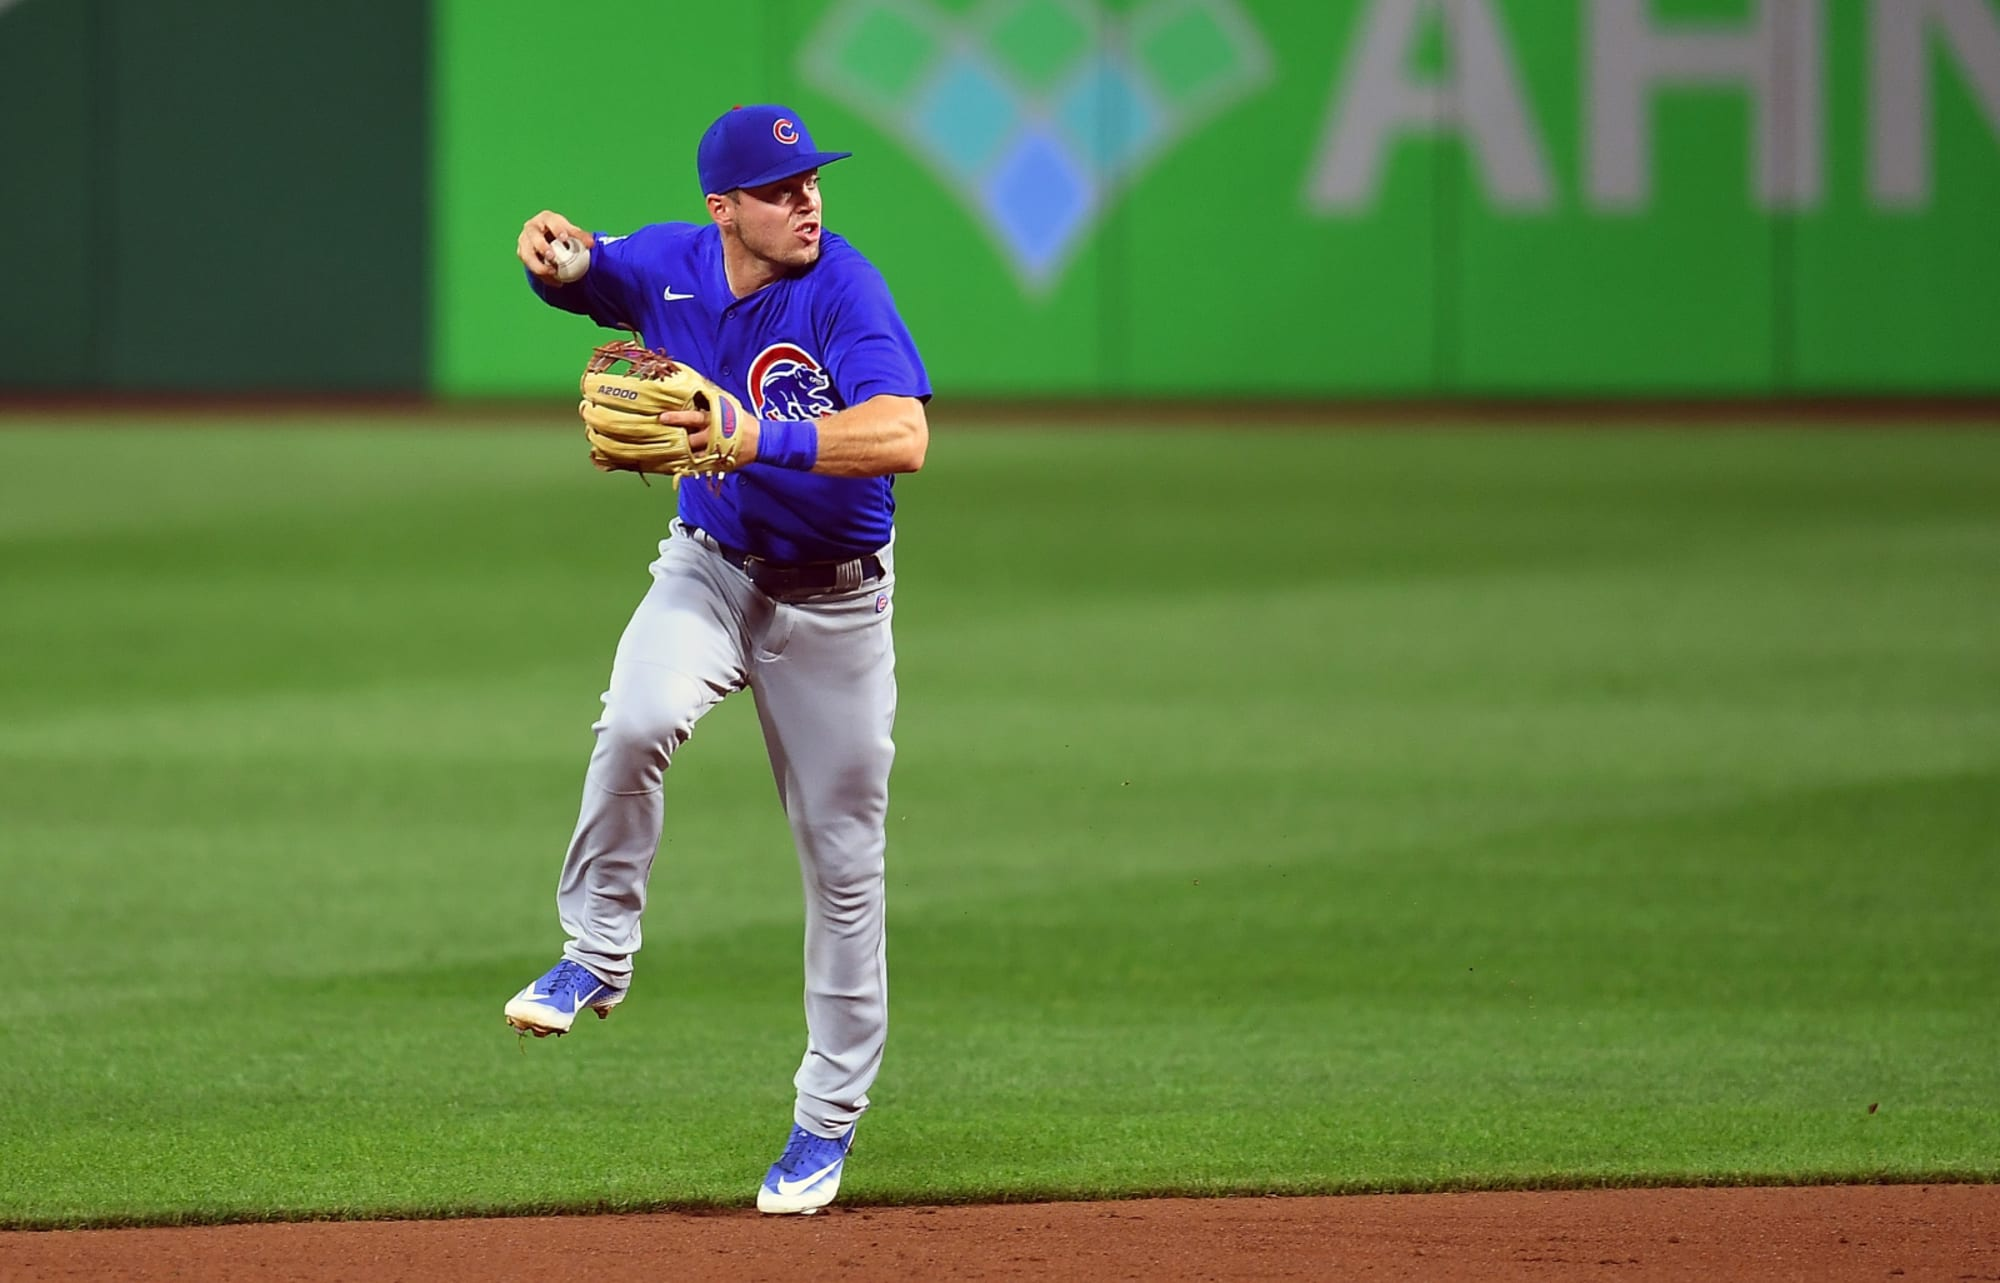 For Cubs, an above-average defense was a major strength this season